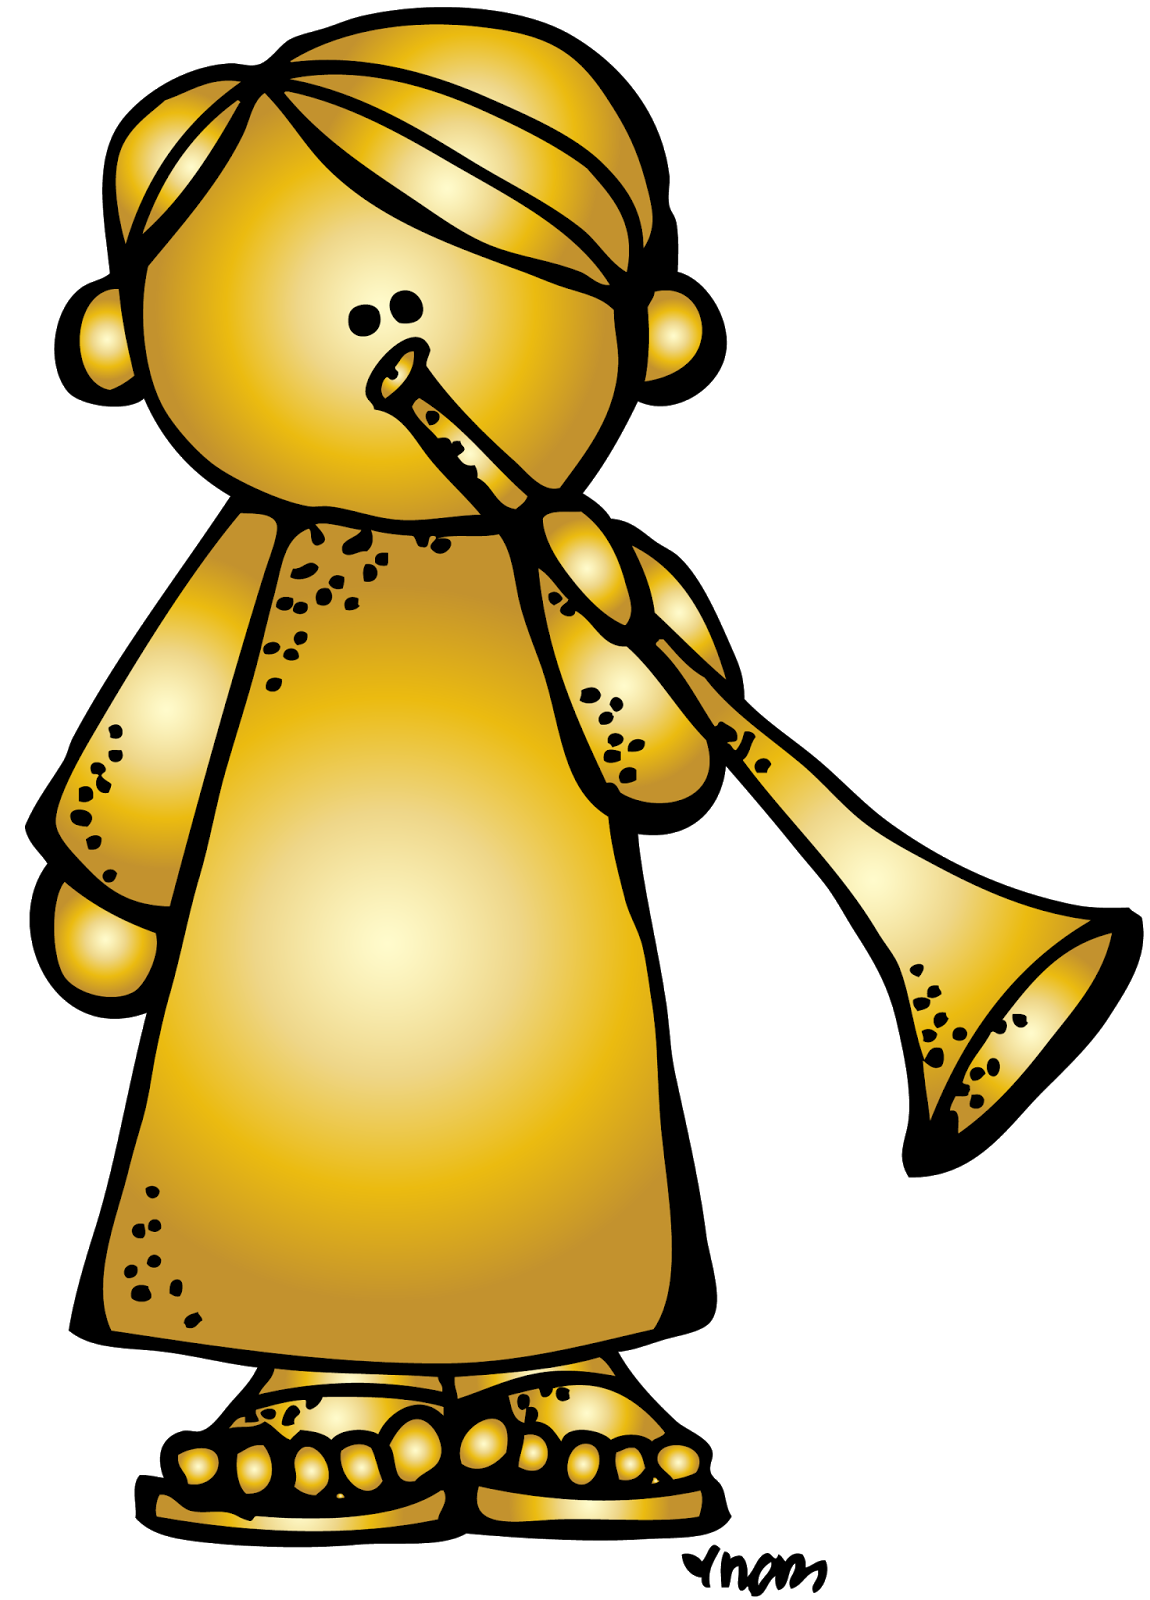 Lds clipart angels 4 » Clipart Station.